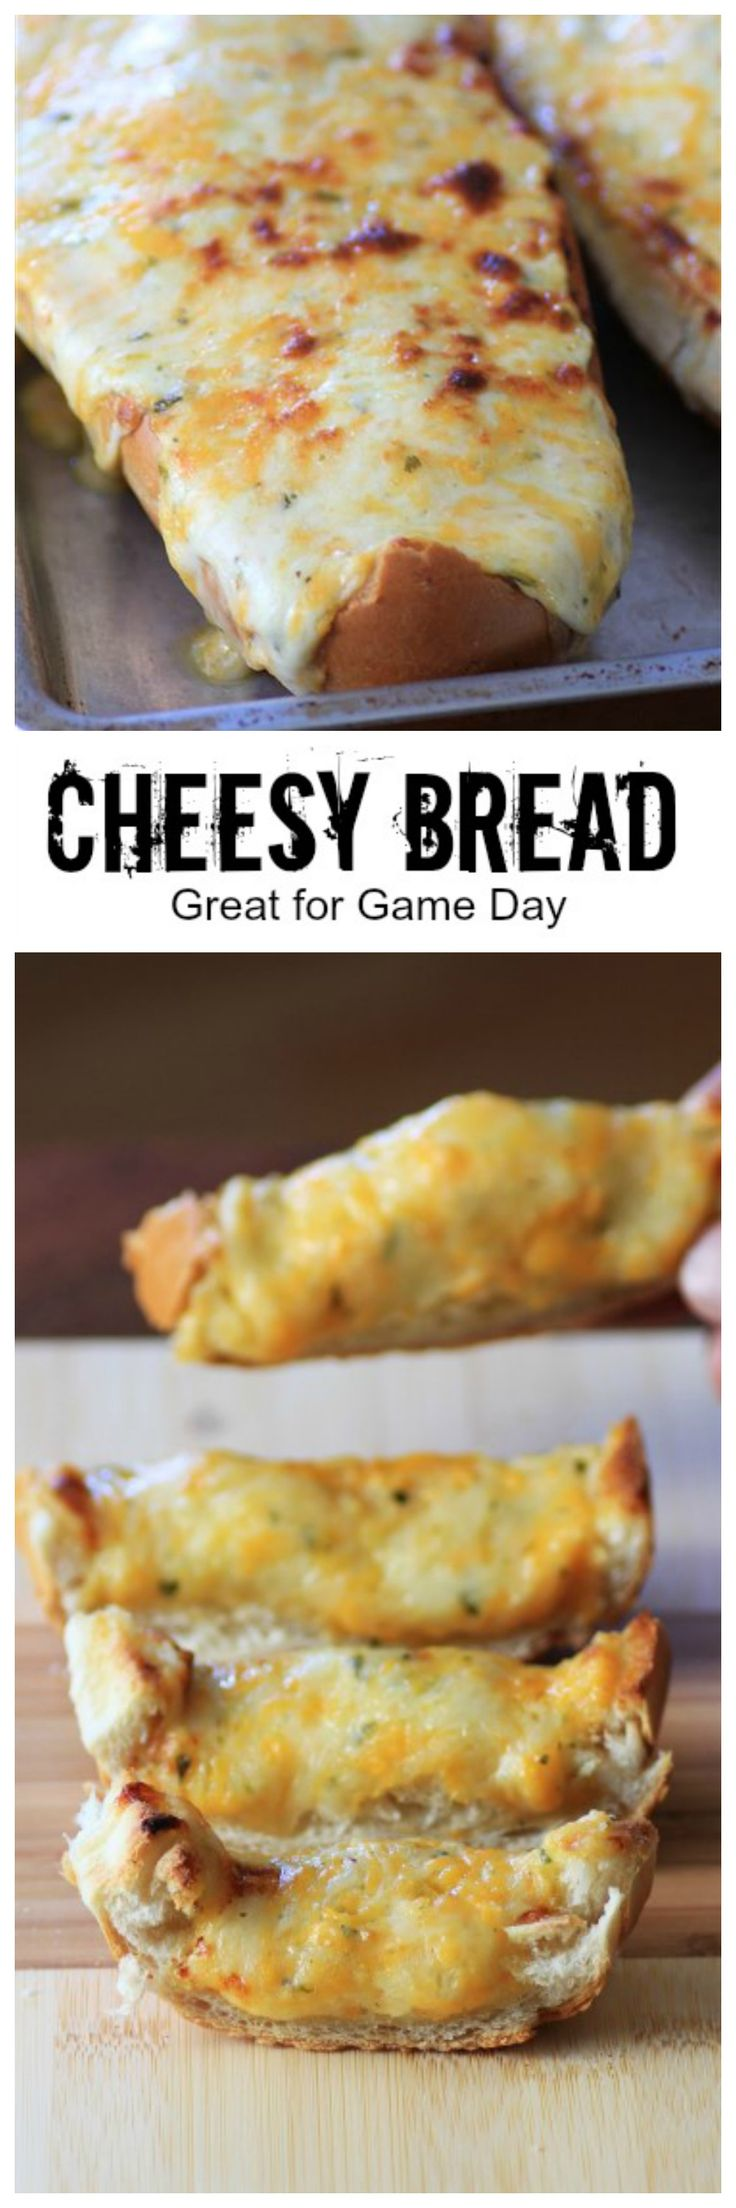 Mouth Watering Mondays - Cheesy Bread